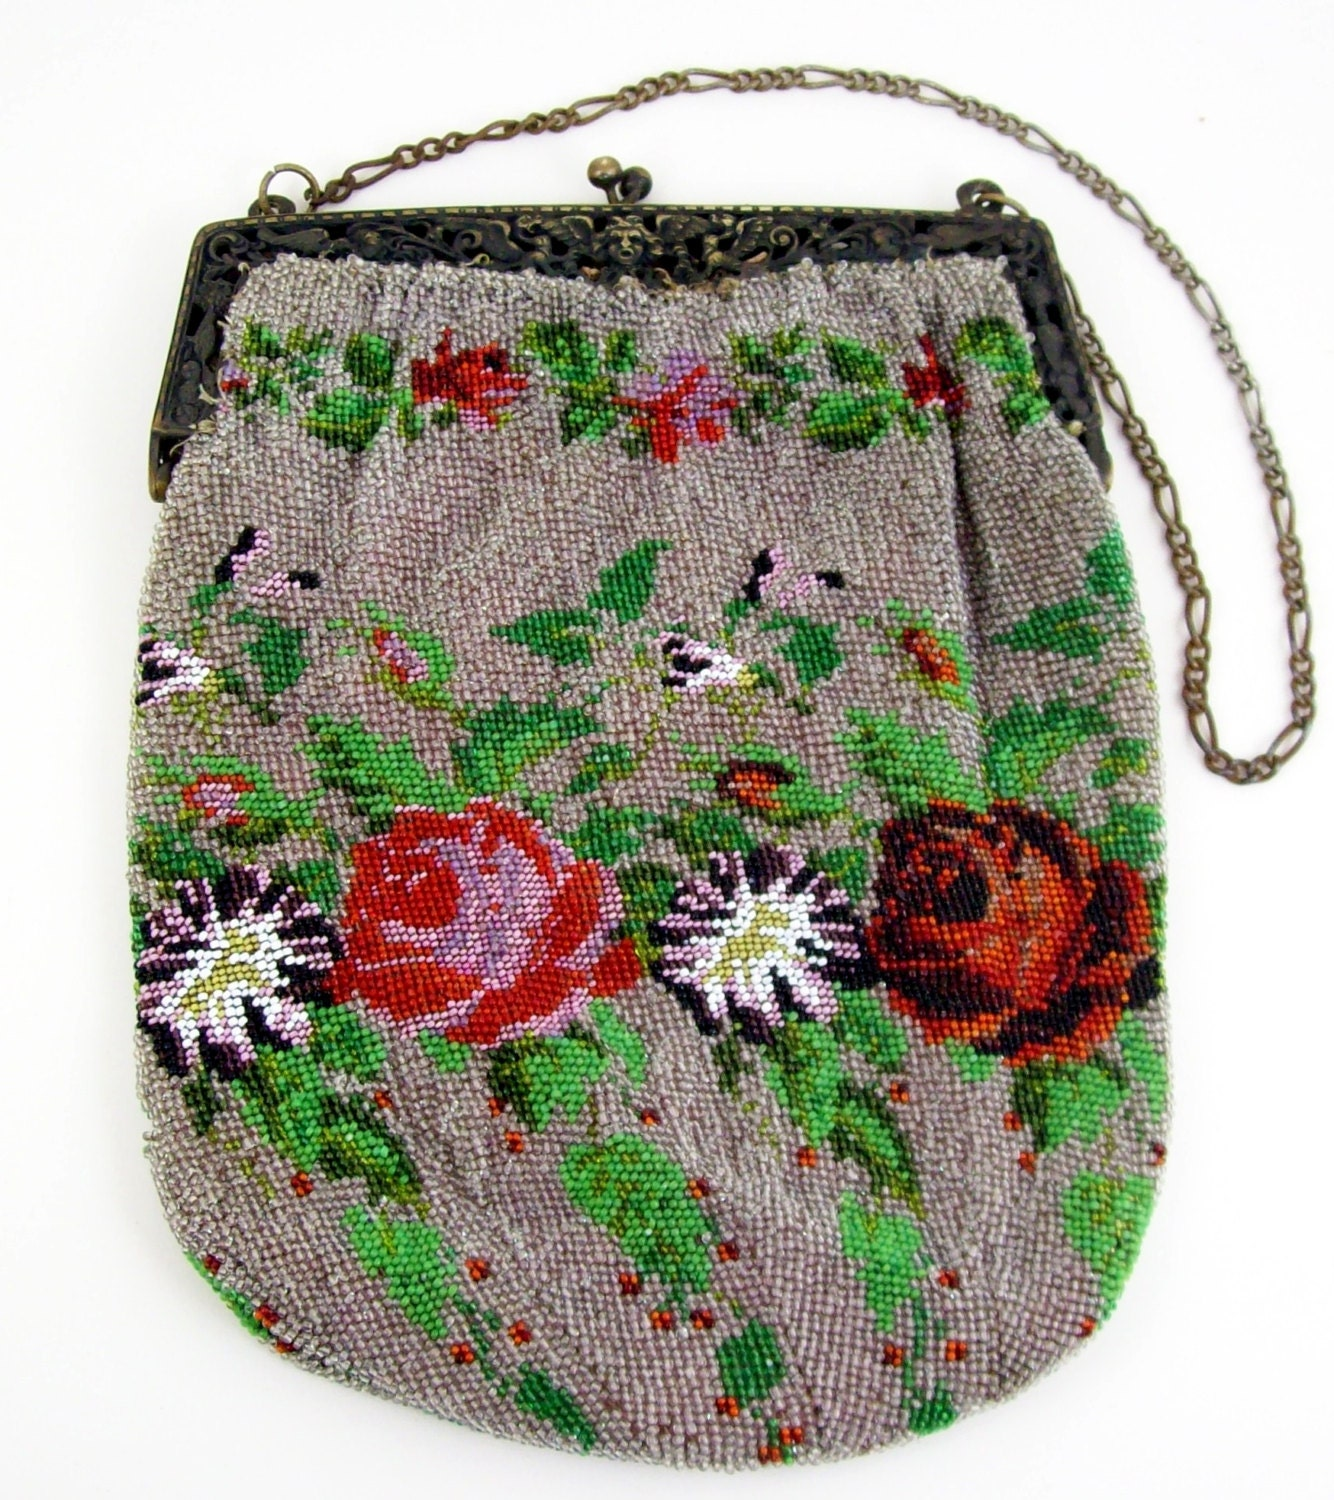 antique beaded evening bag purse floral by piecesfromthepast2